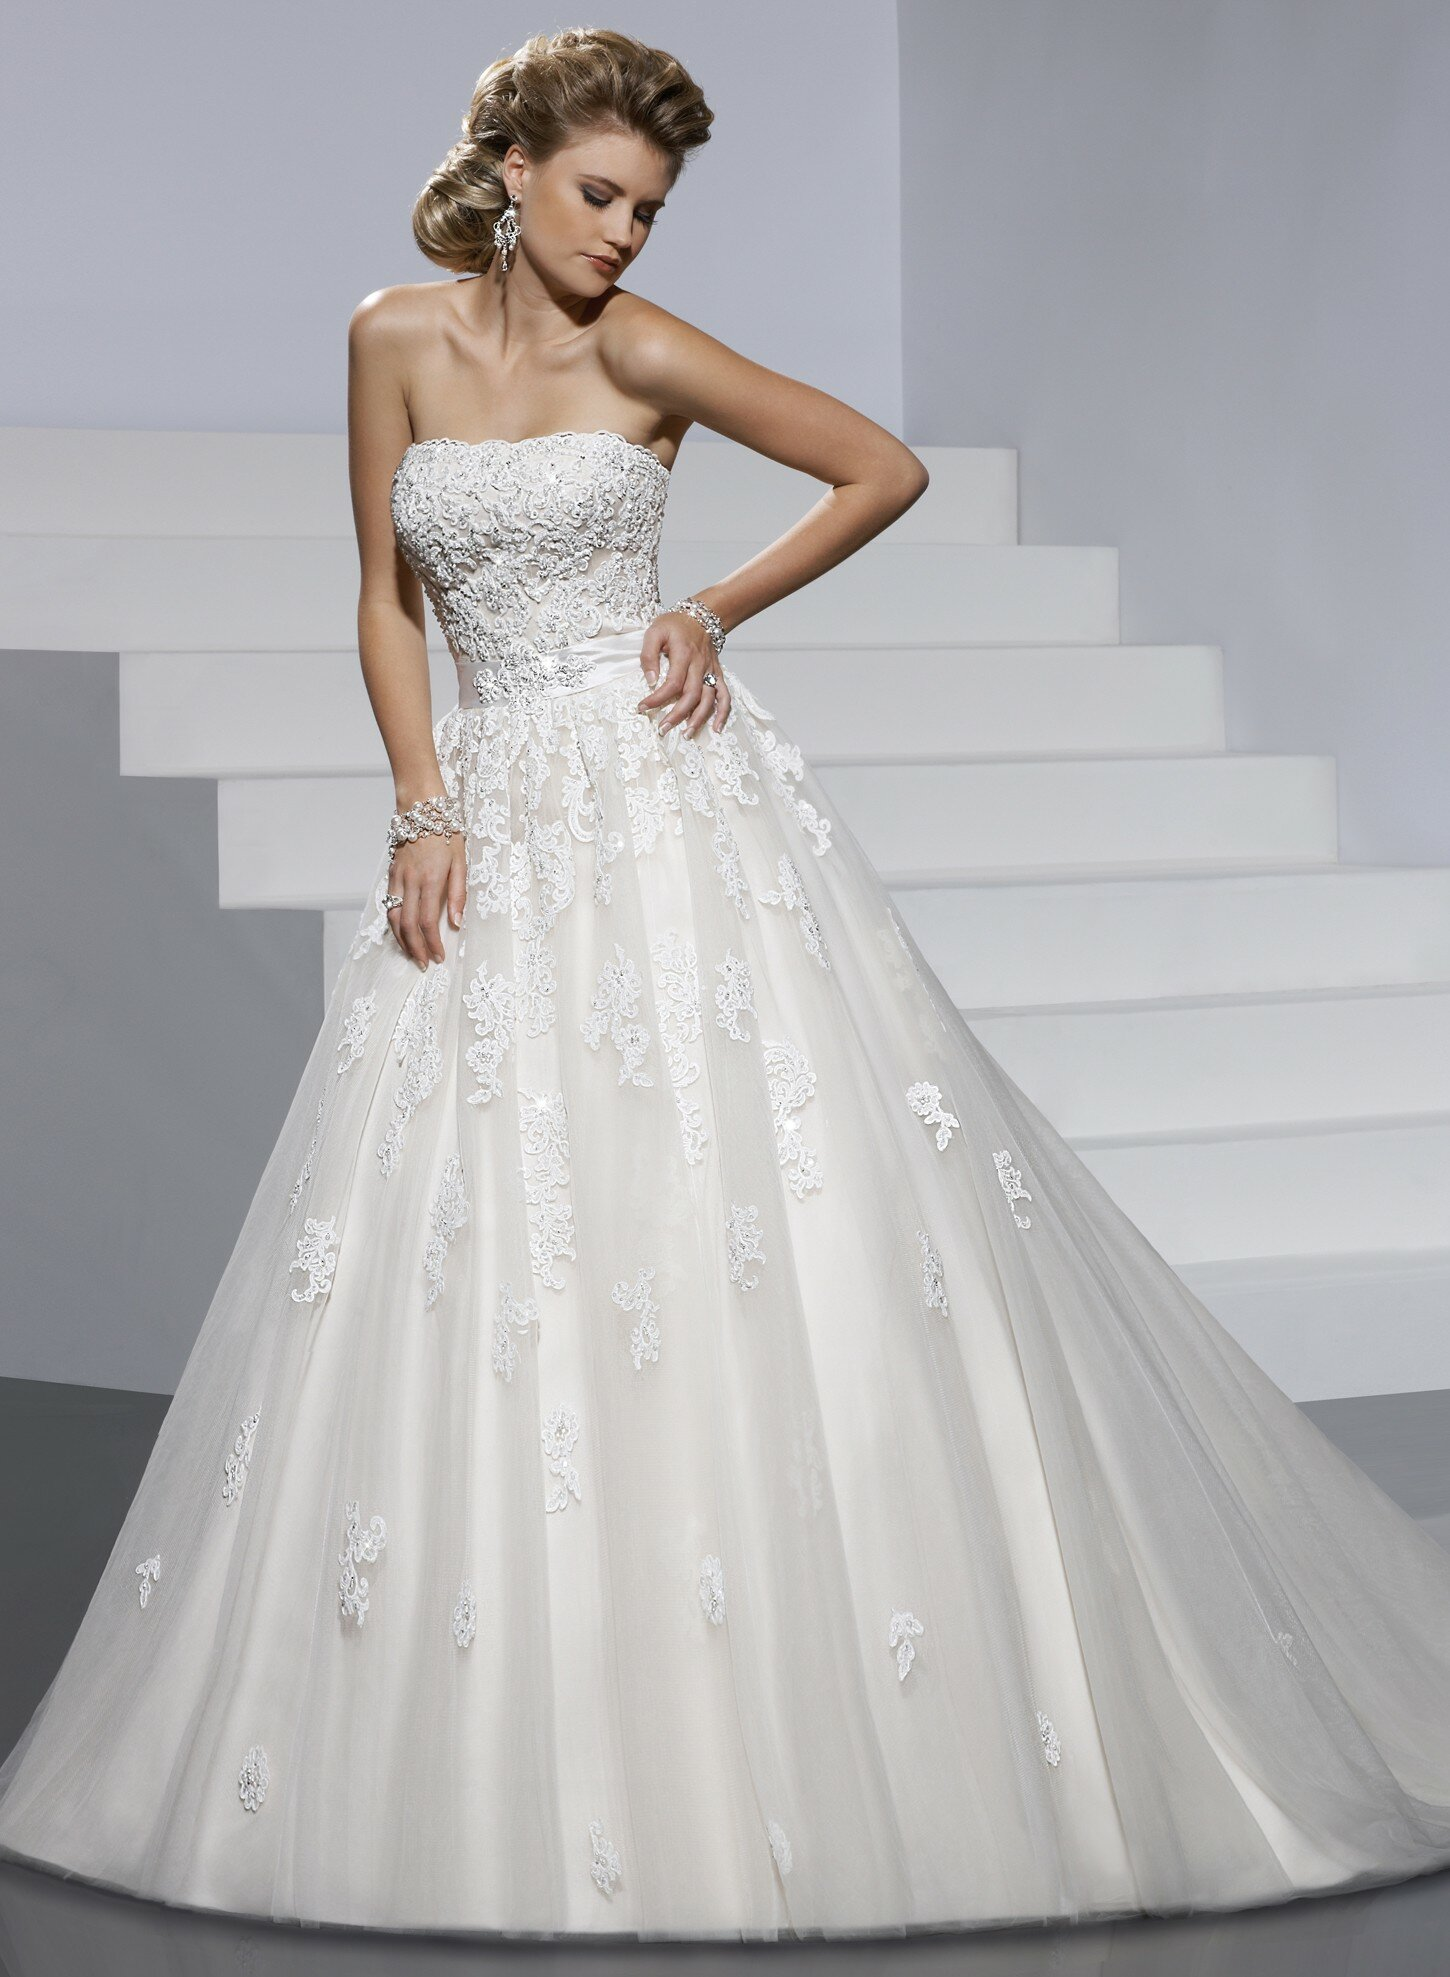 Western lace wedding dresses 2 Browse pictures